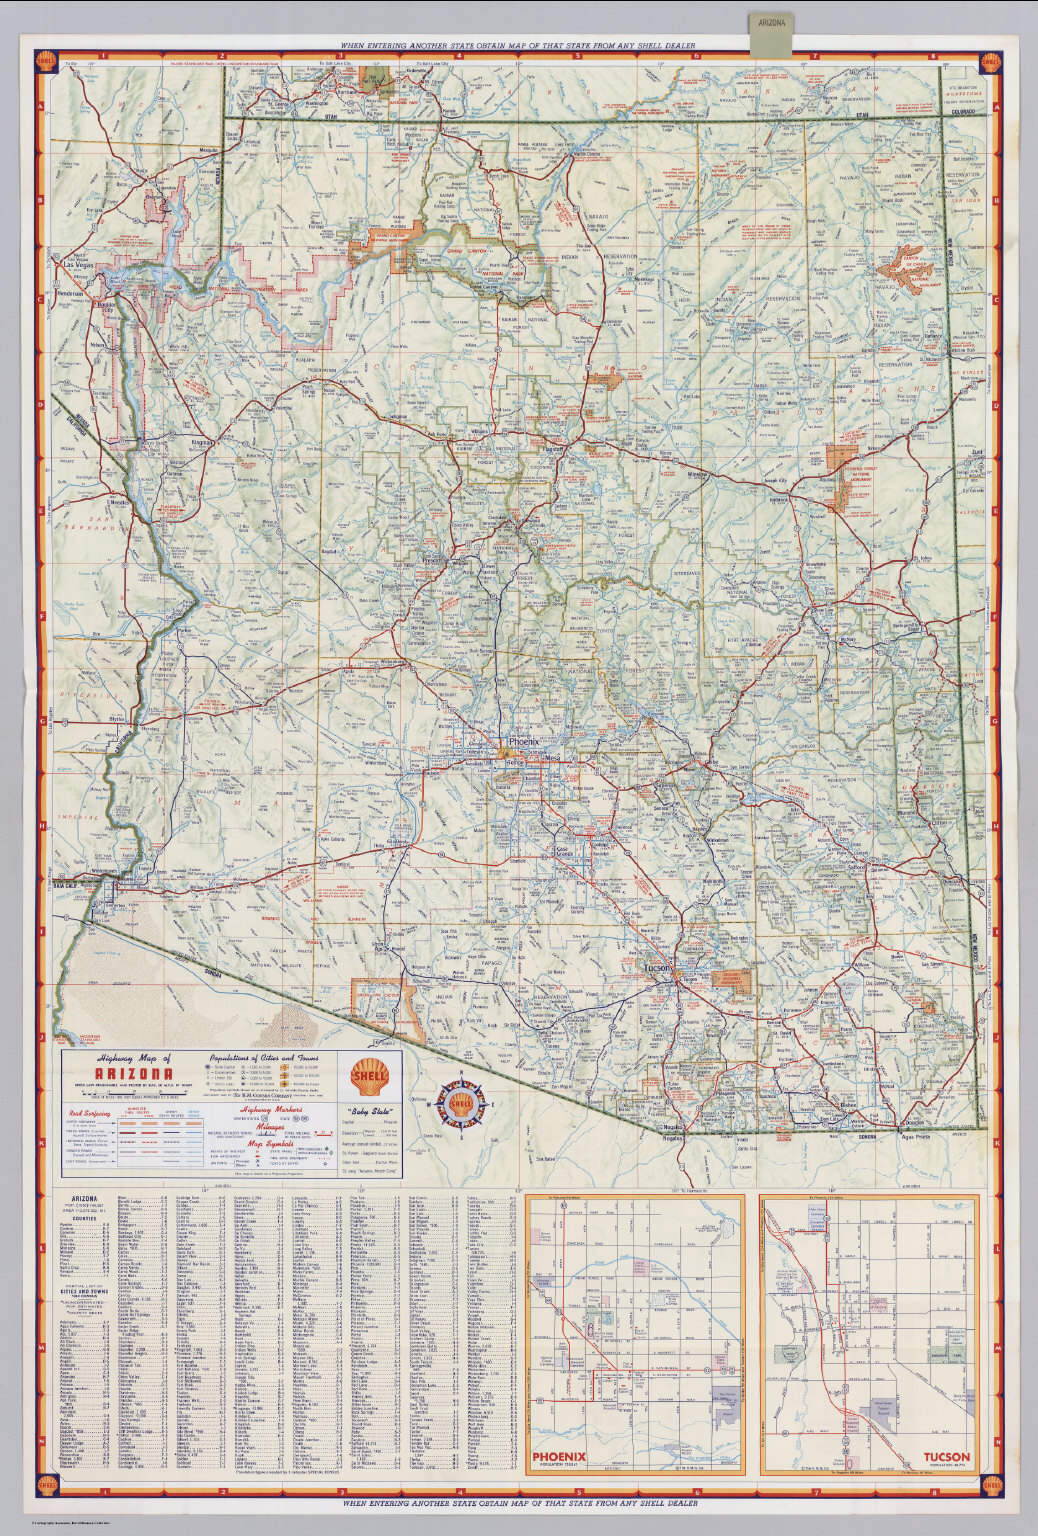 Shell Highway Map Of Arizona David Rumsey Historical Map Collection - Arizona map state